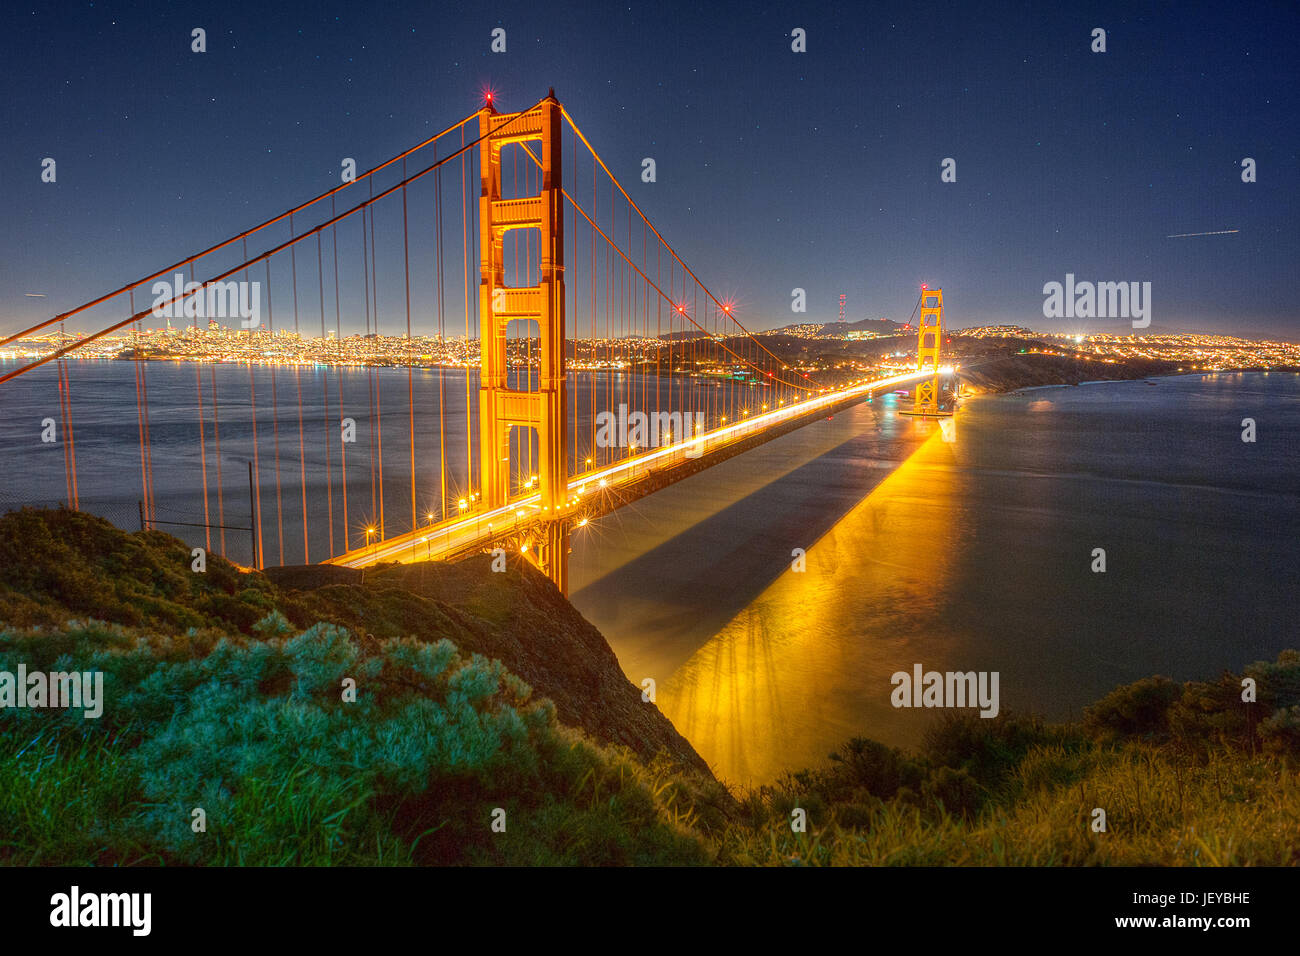 The iconic Golden Gate Bridge with San Francisco in the background photographed at night from the Golden Gate Bridge Stock Photo